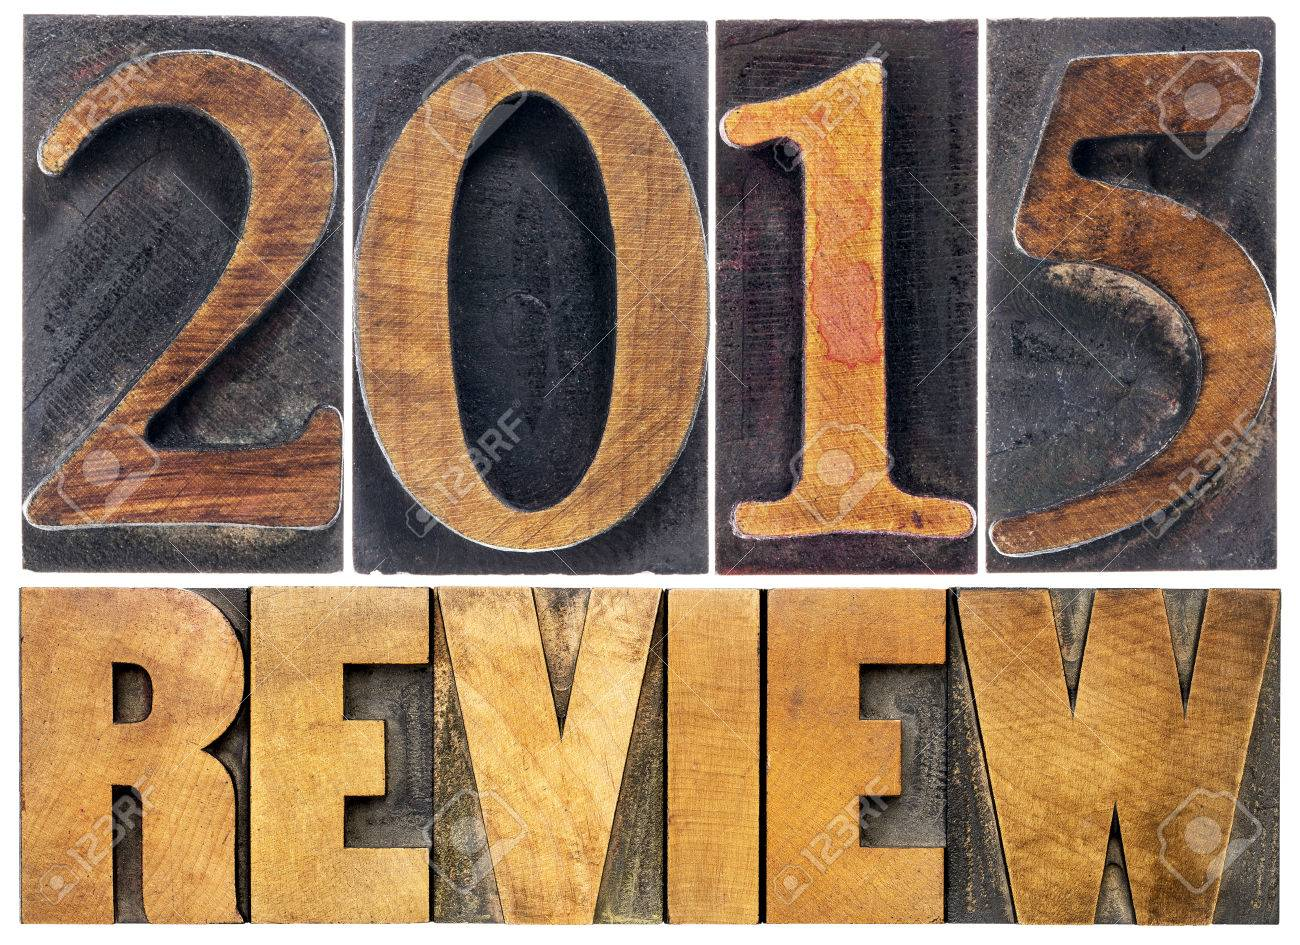 2015 review - annual review or summary of the recent year - isolated text in letterpress wood type blocks Stock Photo - 45296598